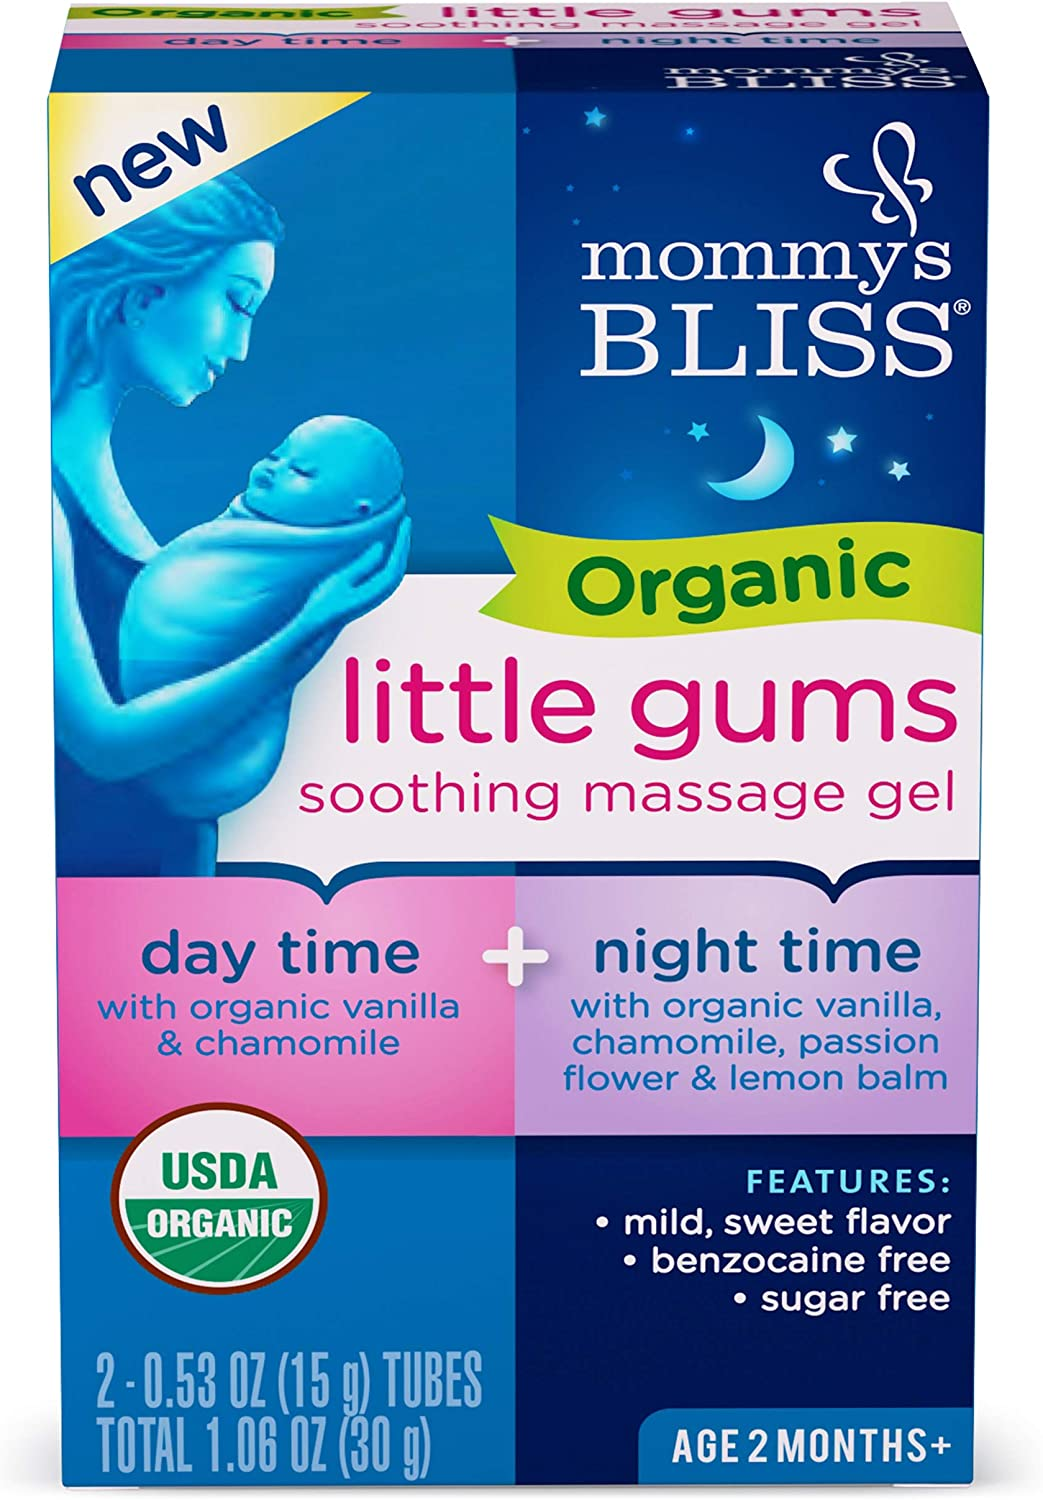 Mommy's Bliss - Organic Little Gums Soothing Massage Gel - Day & Night Combo - 1.06 Ounce (2 Tubes): Health & Personal Care